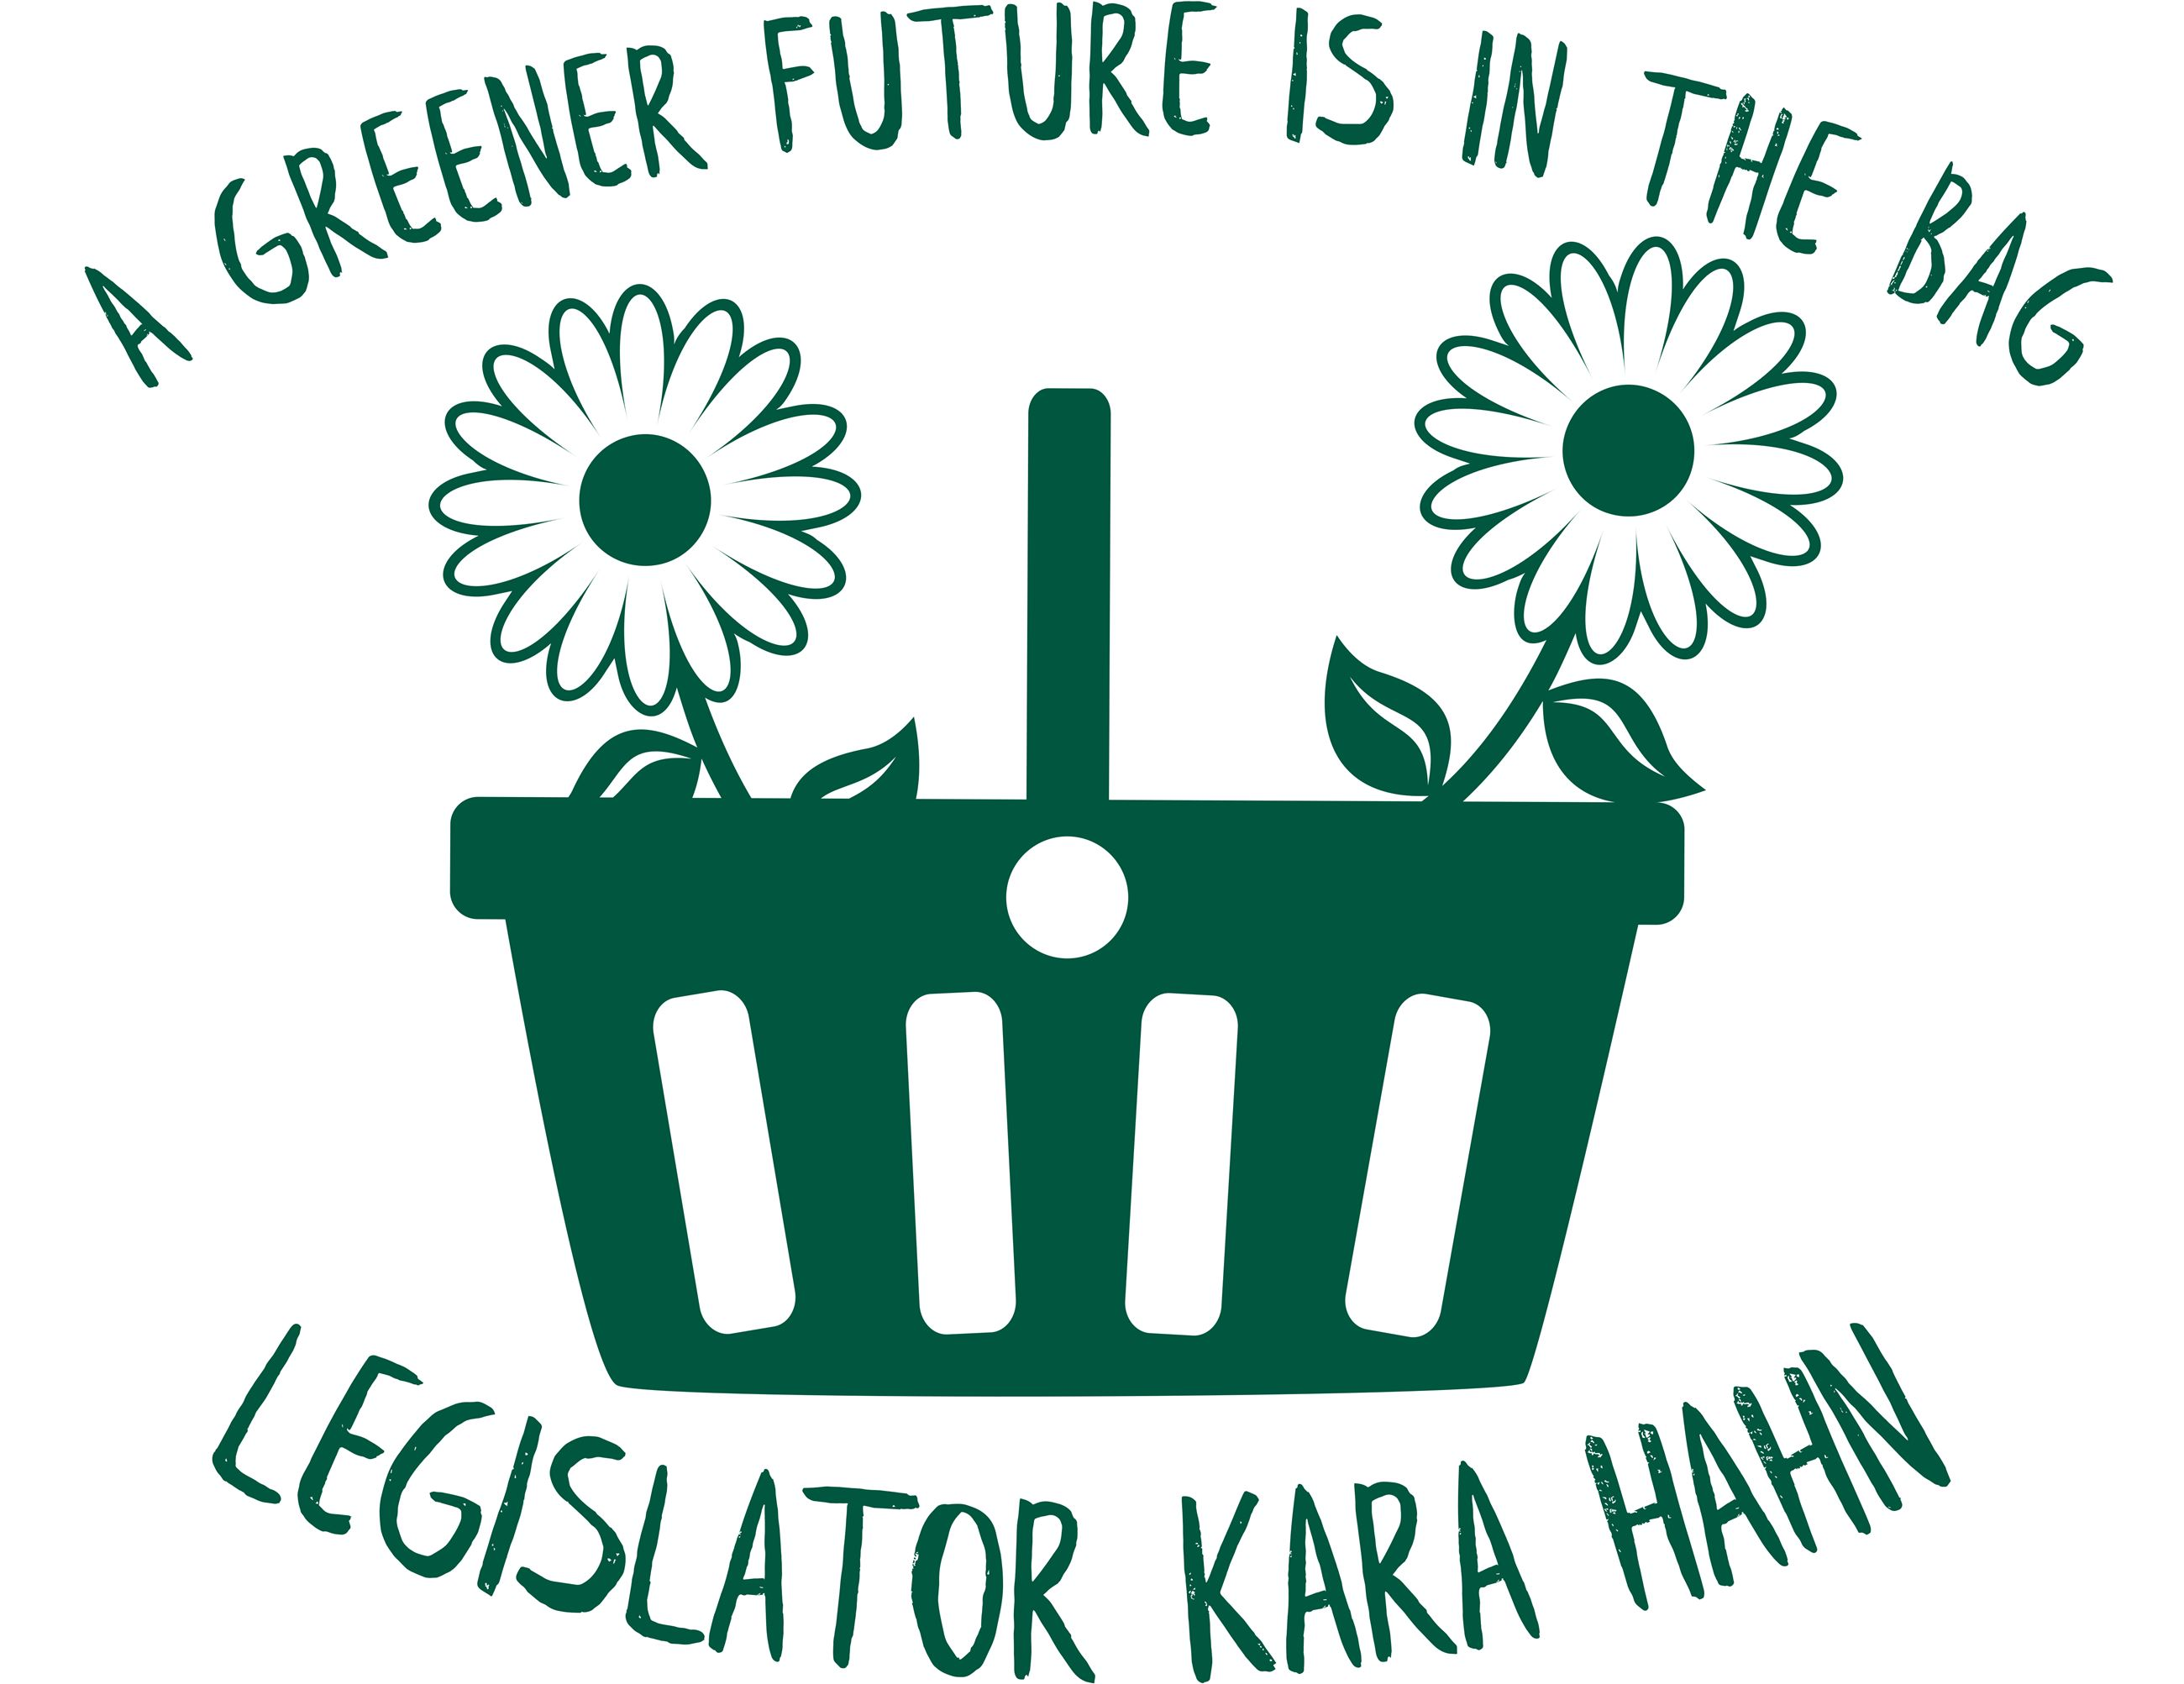 A Greener Future is in the Bag